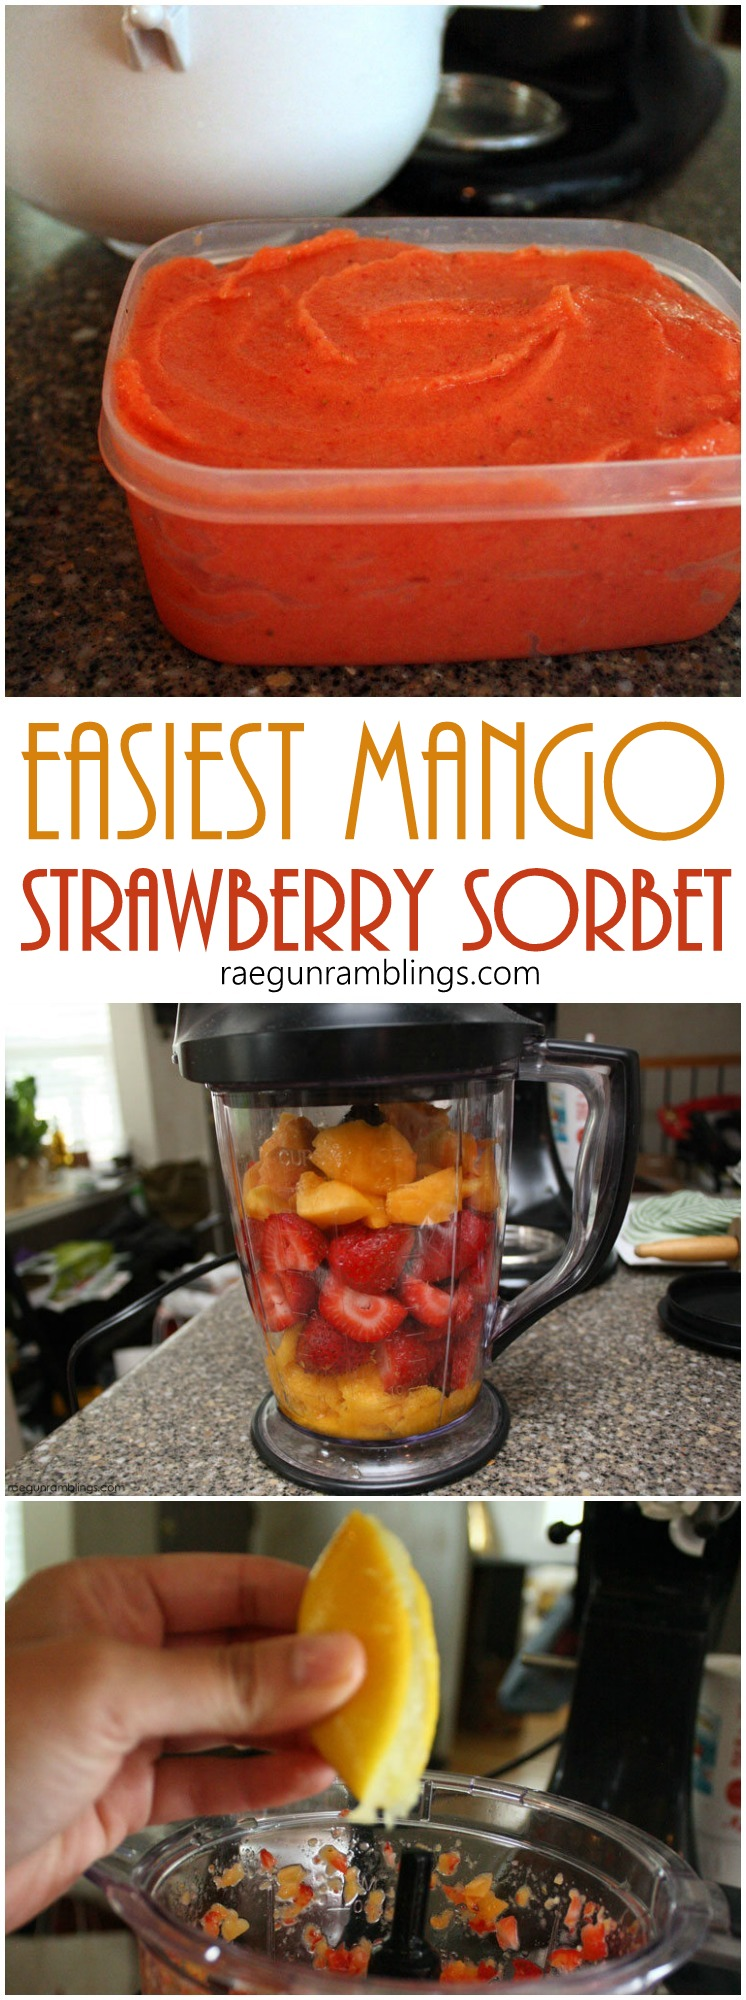 This Mango strawberry sorbet SO good. I've made it the last two weekends. Great for when you want a healthy alternative to ice cream via @raegun